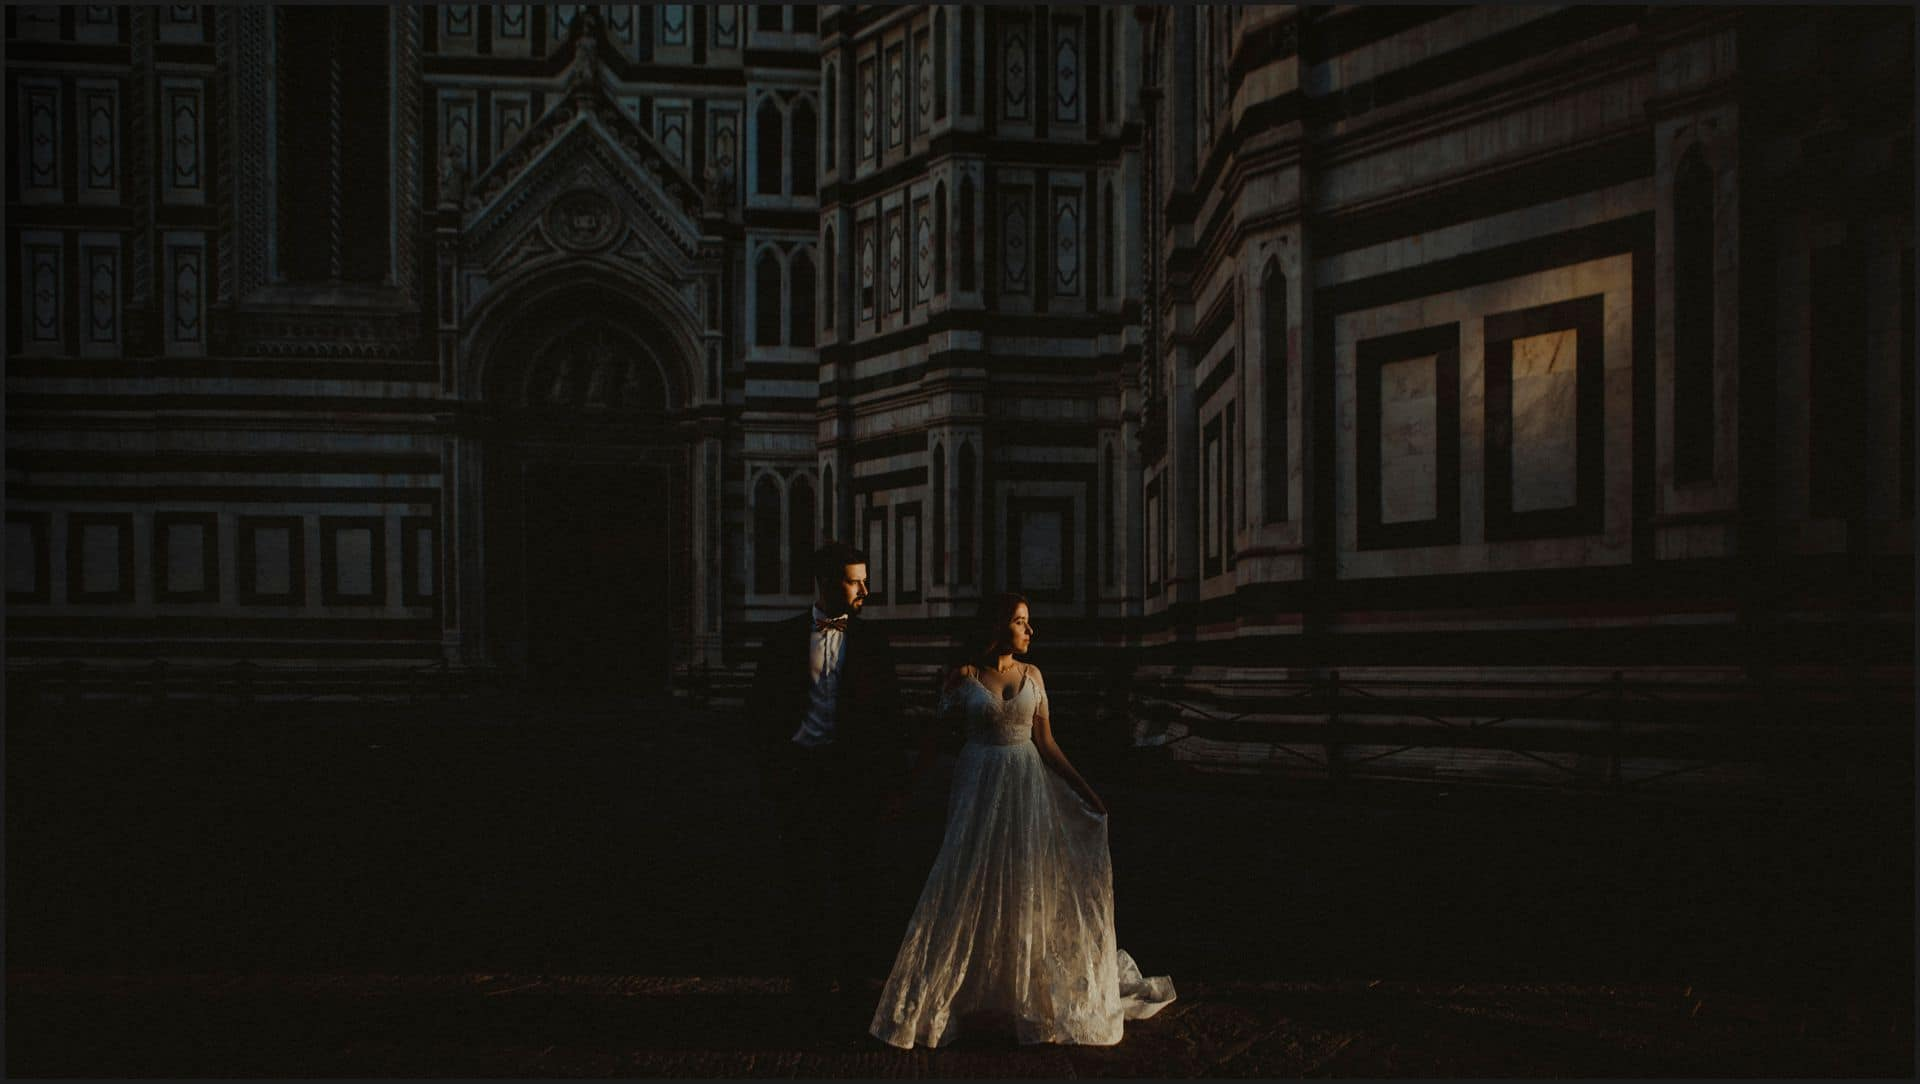 tuscany, wedding, florence, bride, groom